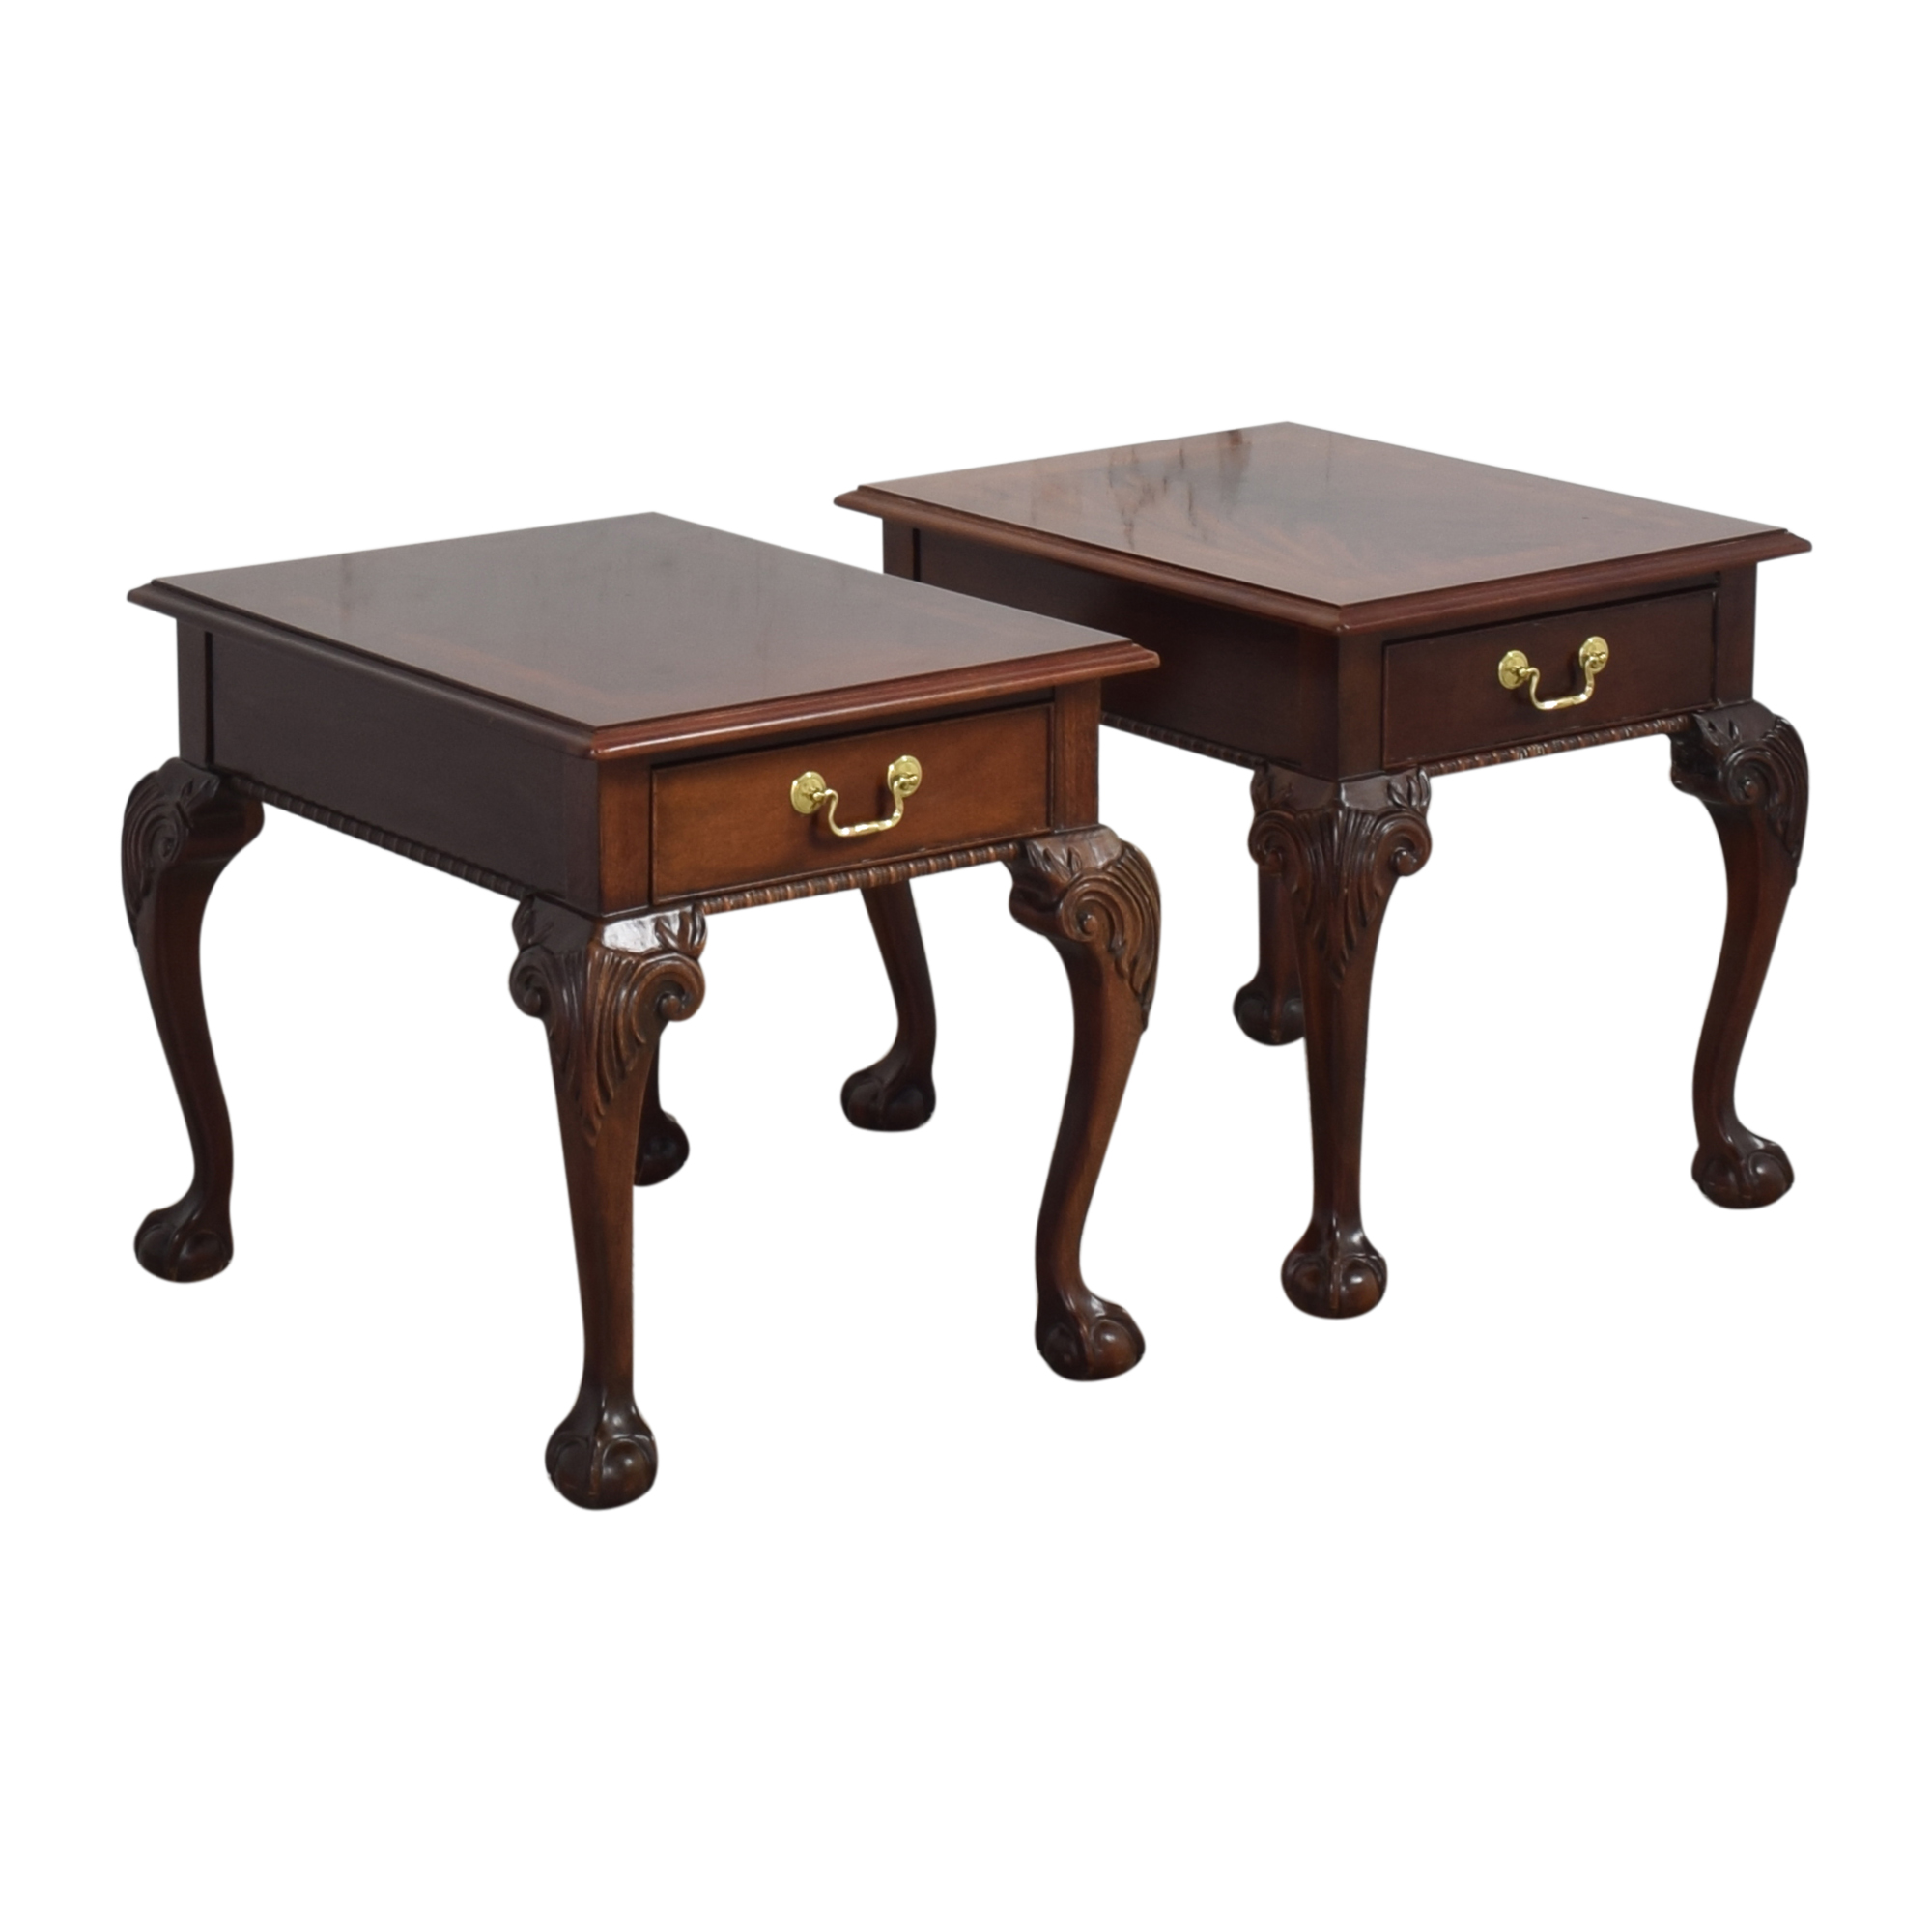 Thomasville Thomasville Queen Anne-Style Clawfoot End Tables on sale